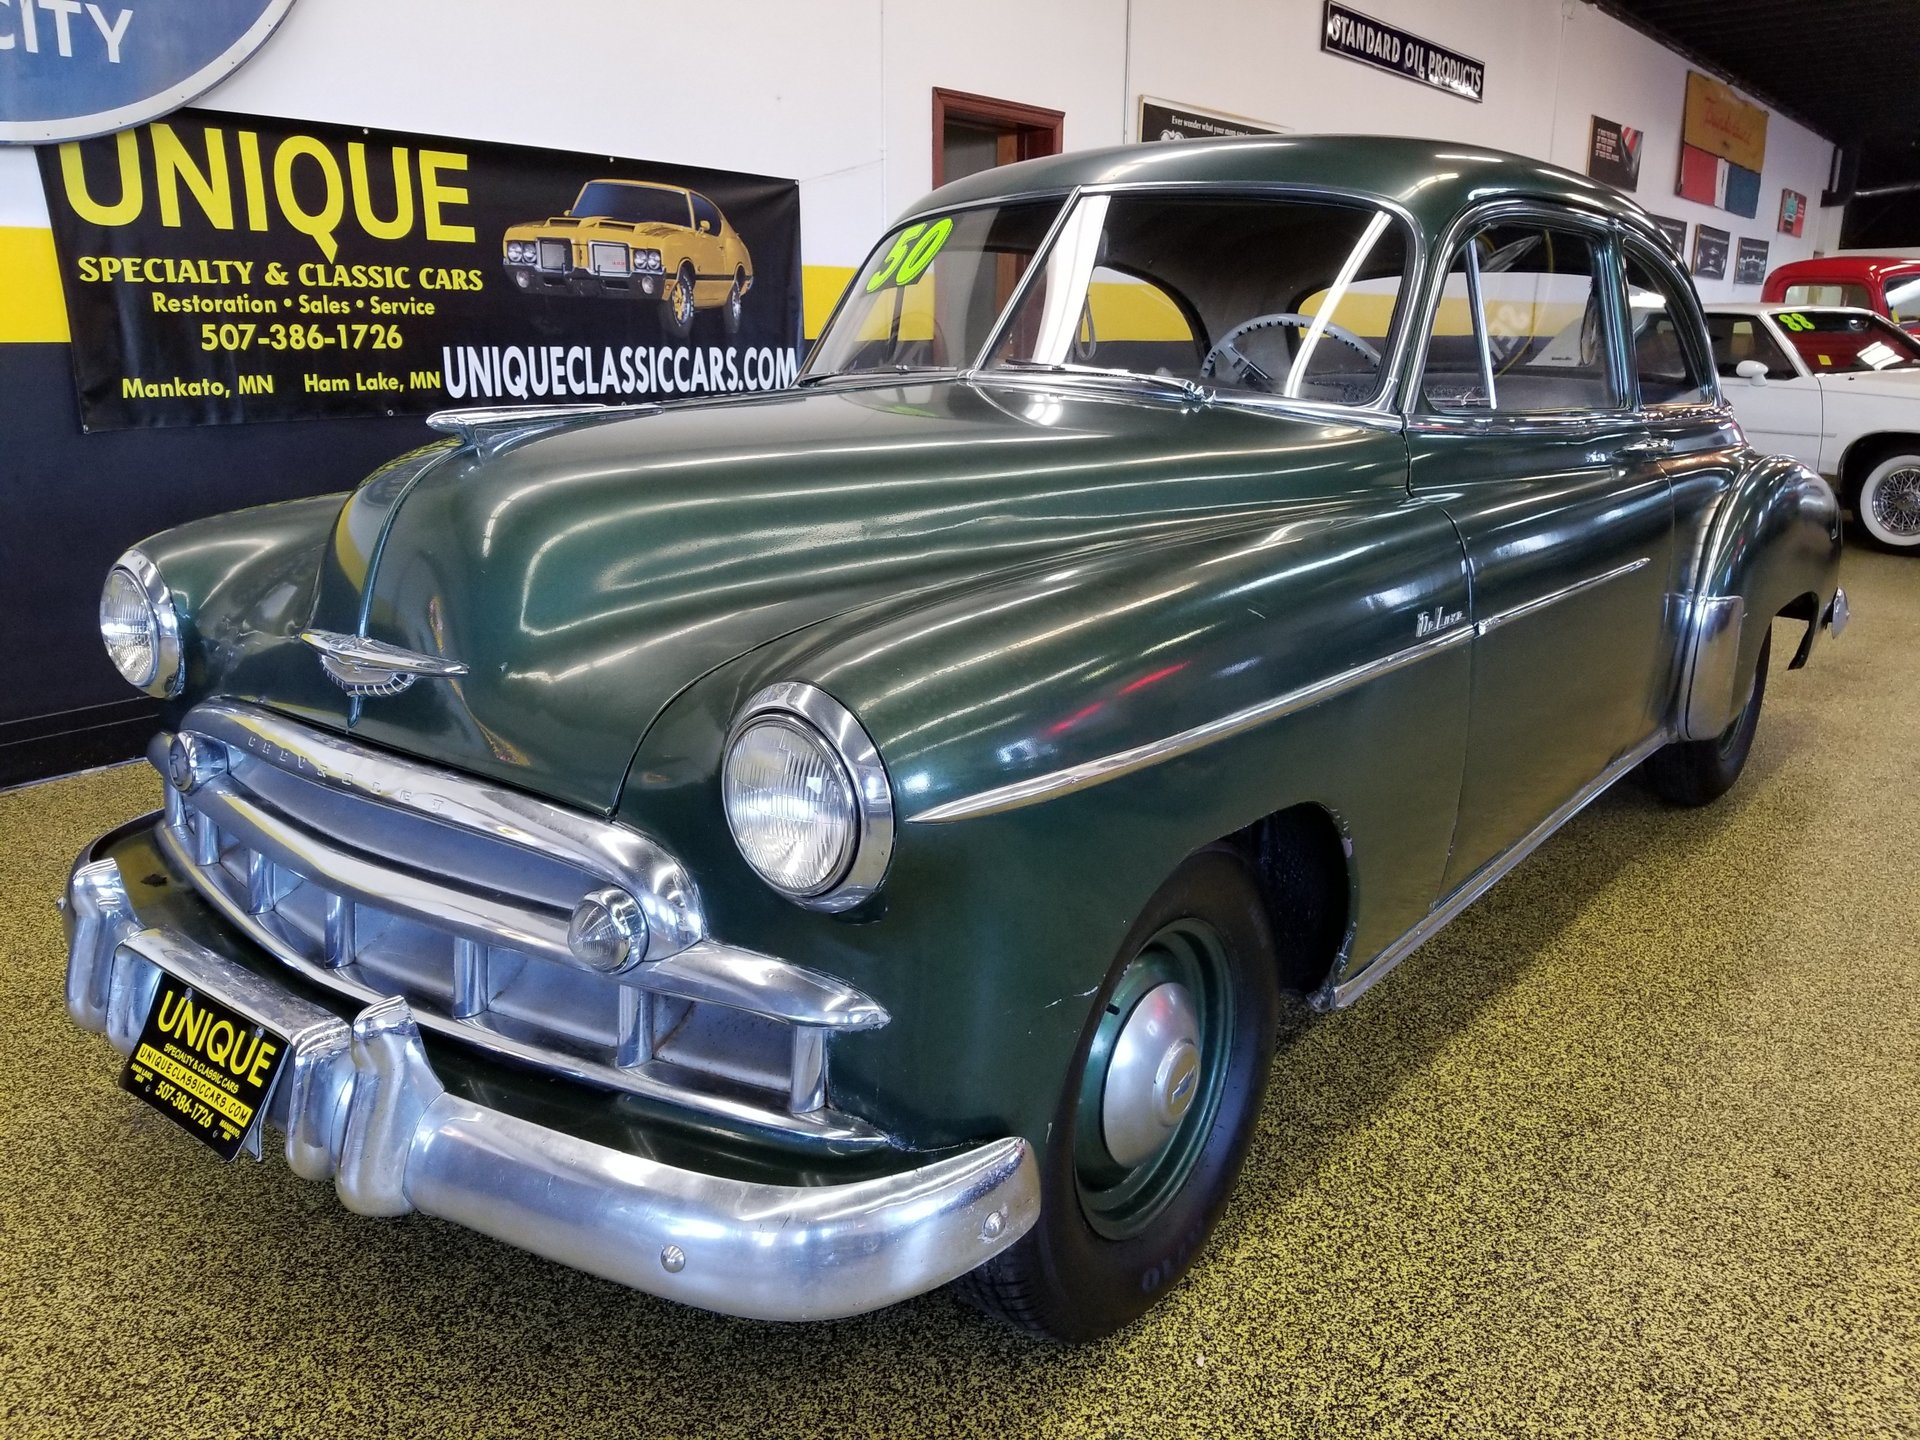 1950 chevrolet styleline deluxe 2 door sedan ebay for 1950 chevy styleline deluxe 4 door sedan